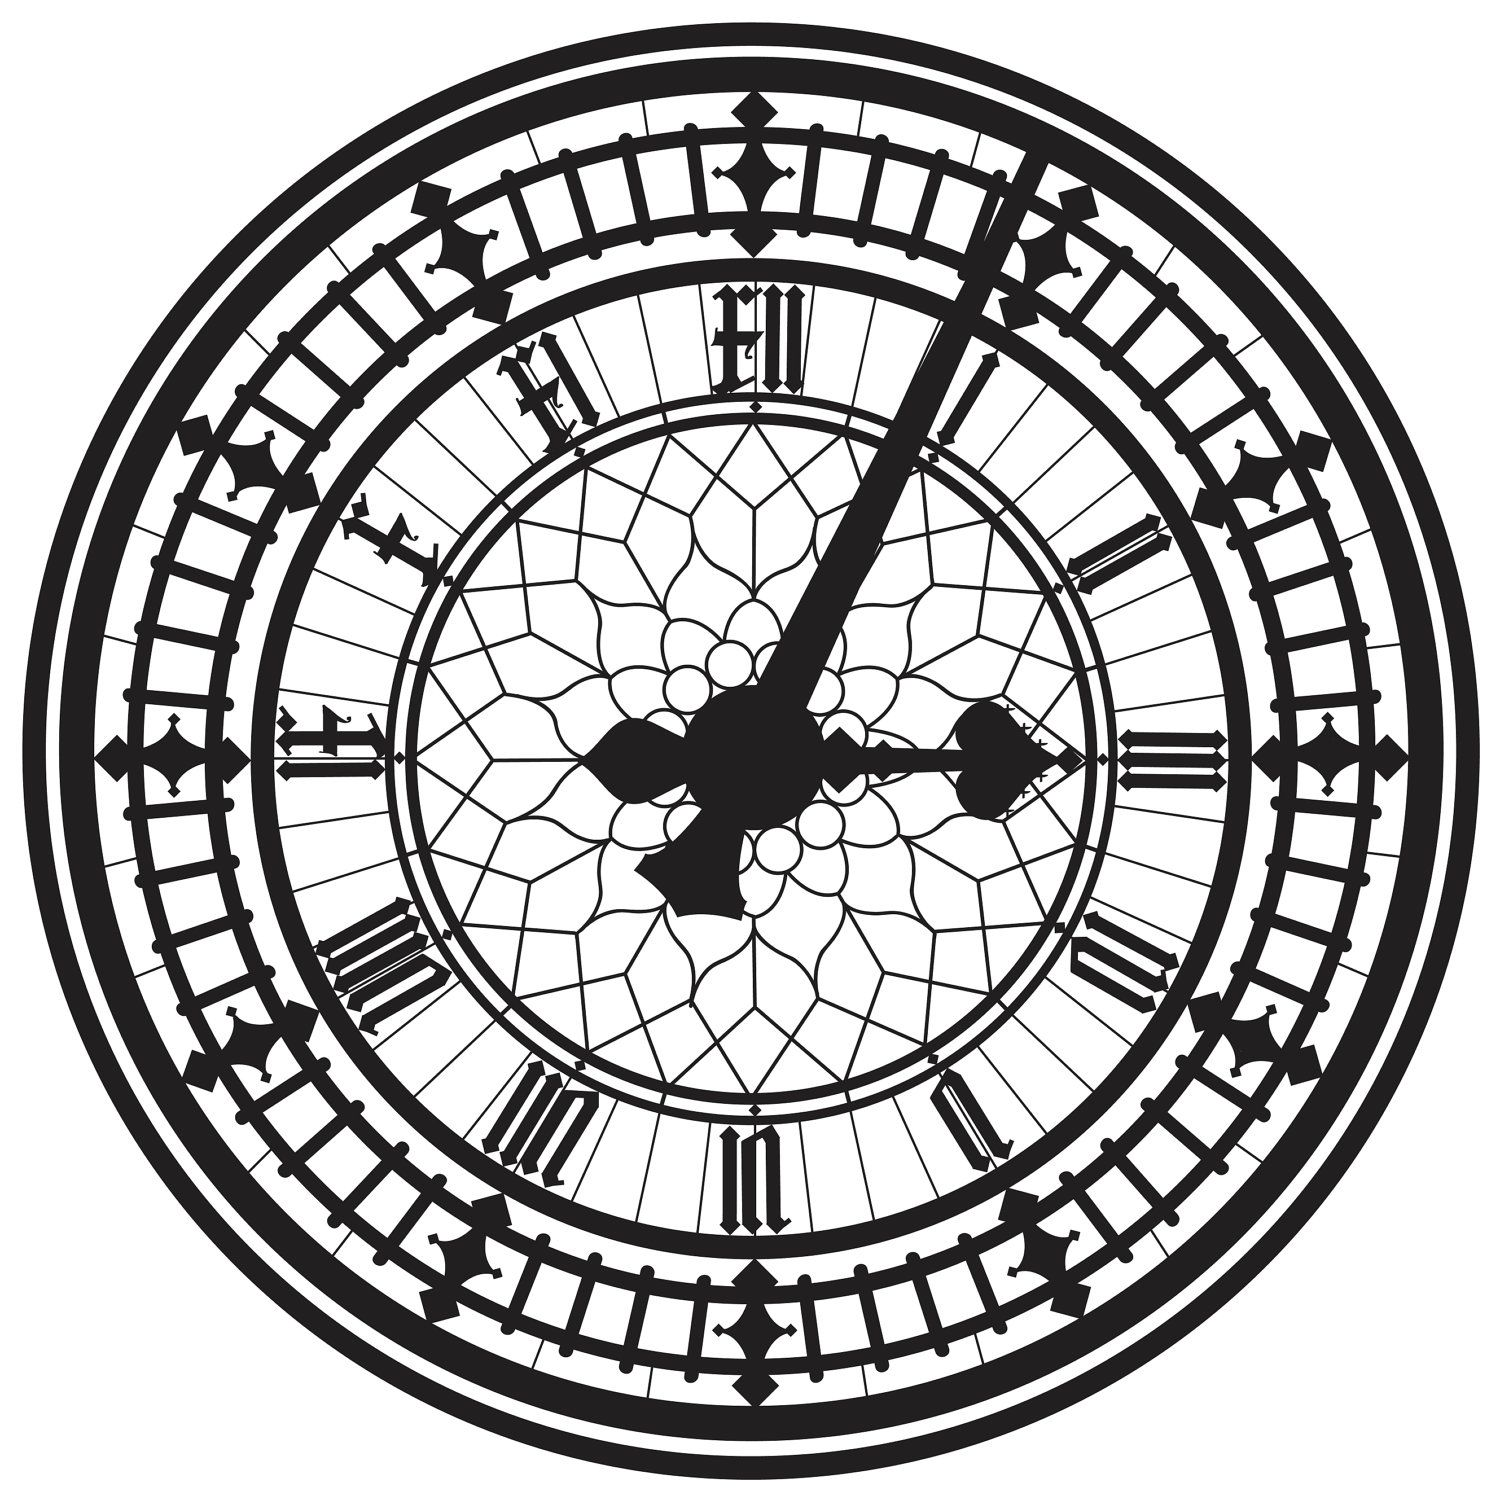 Line Drawing Clock Face : This is the big ben clock face in london silhouettes